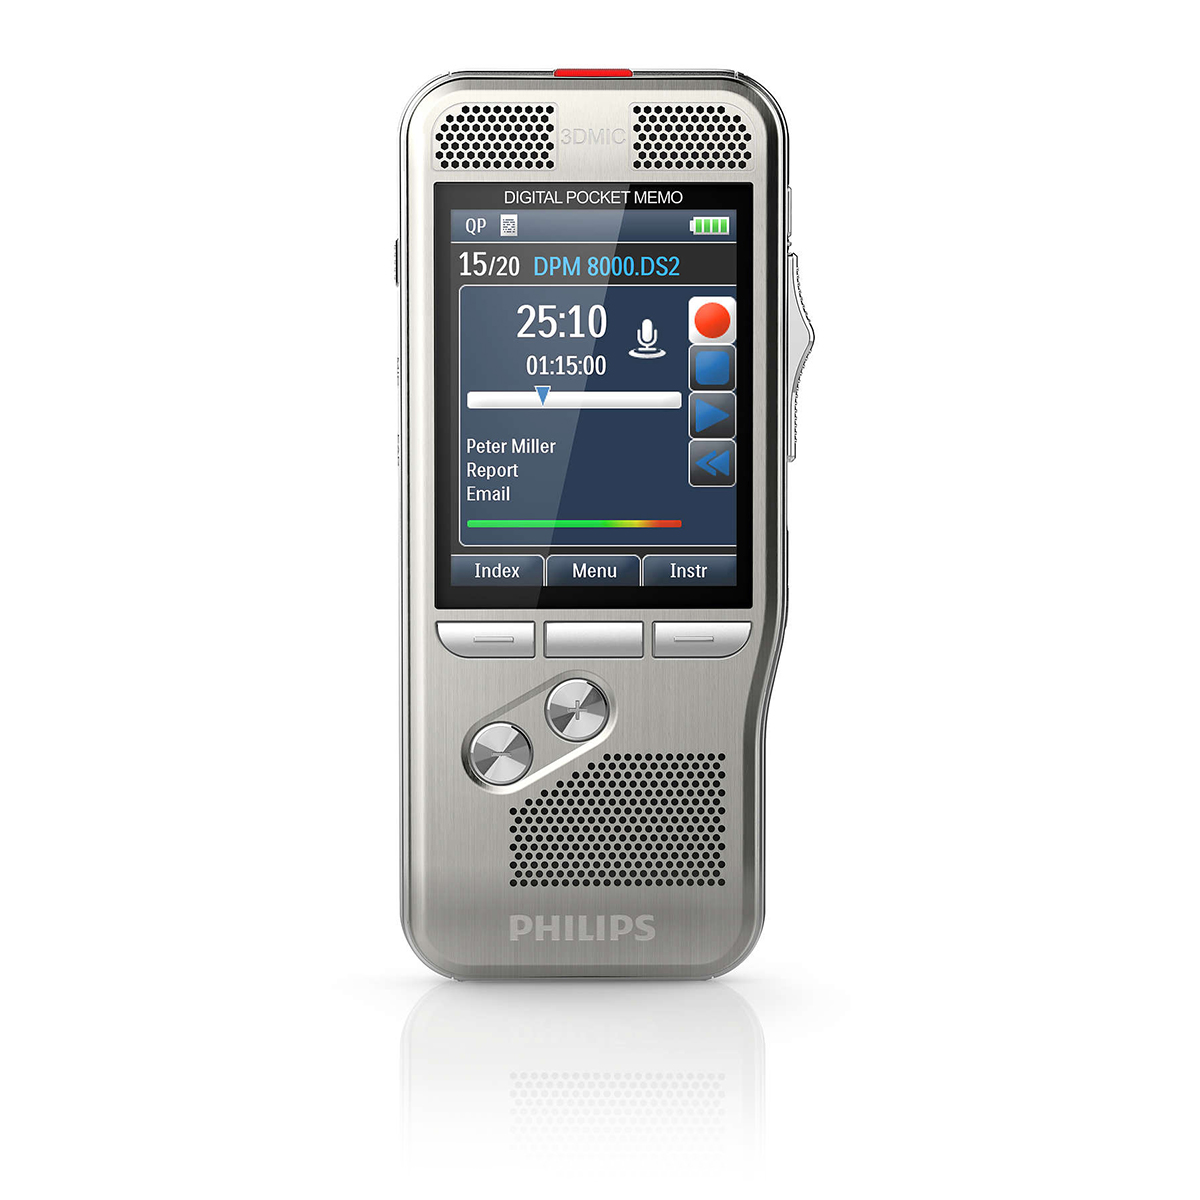 Philips DPM8200 Pocket Memo